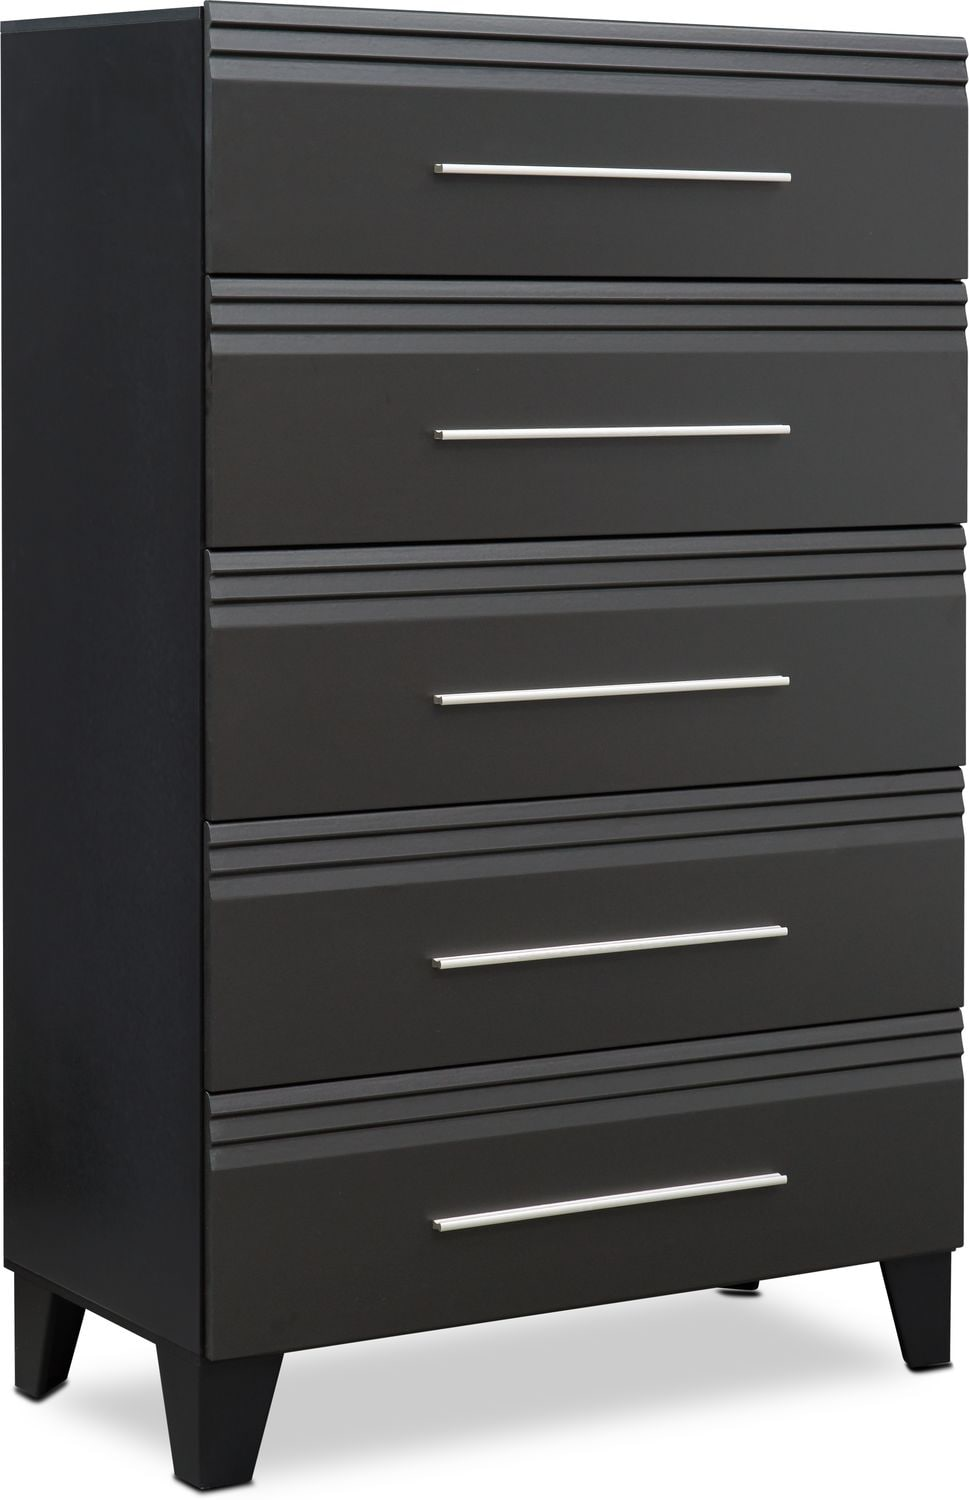 Bedroom Furniture - Allori 5-Drawer Chest